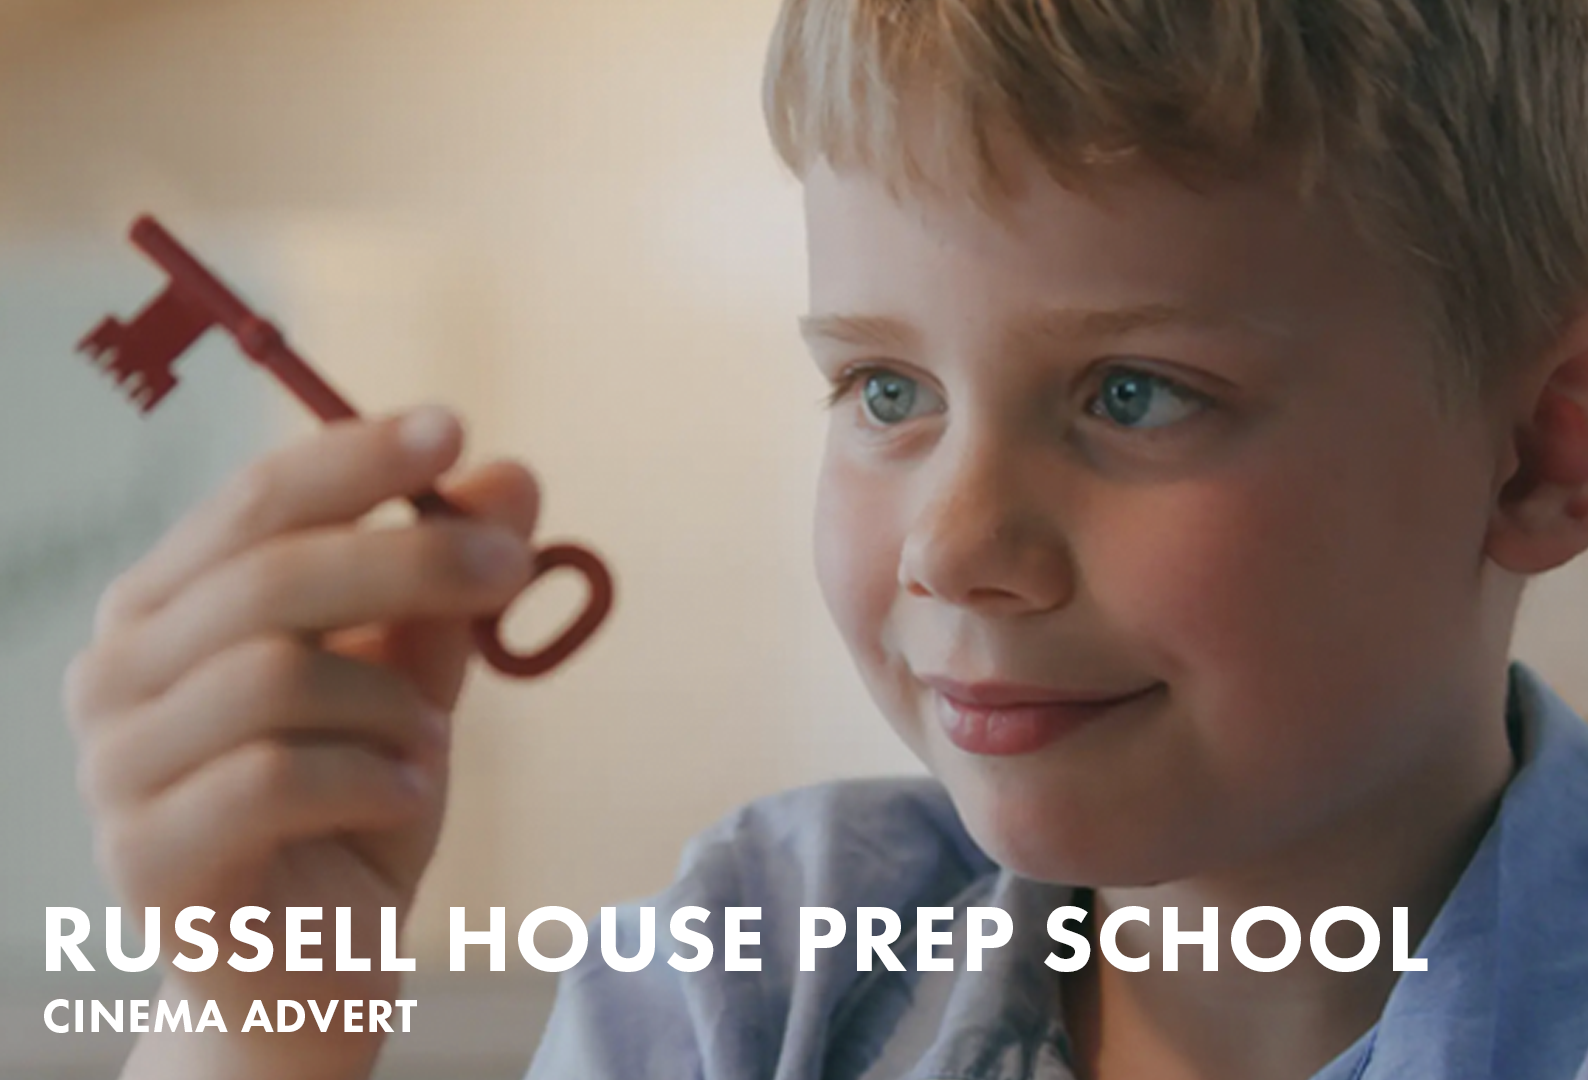 Russell House Prep School